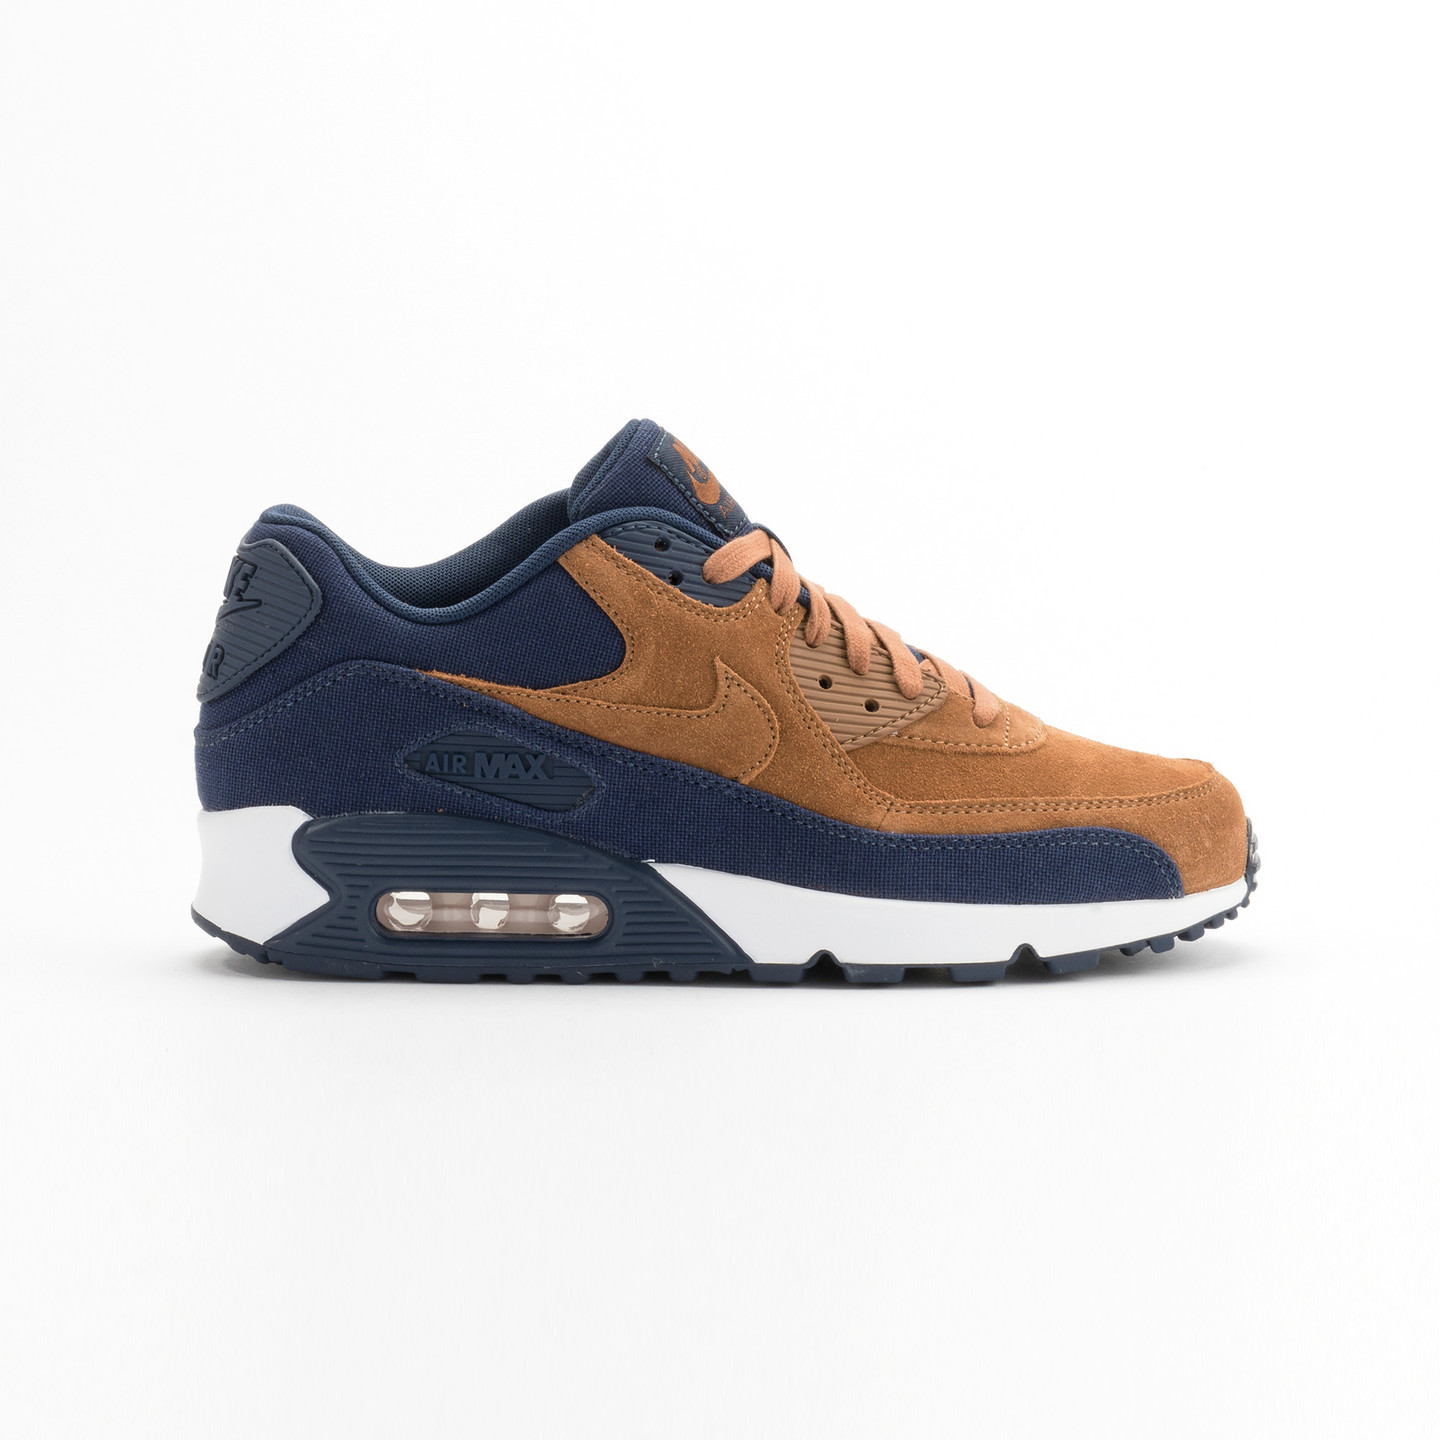 Nike Air Max 90 Premium Ale Brown / Midnight Navy 700155-201-46